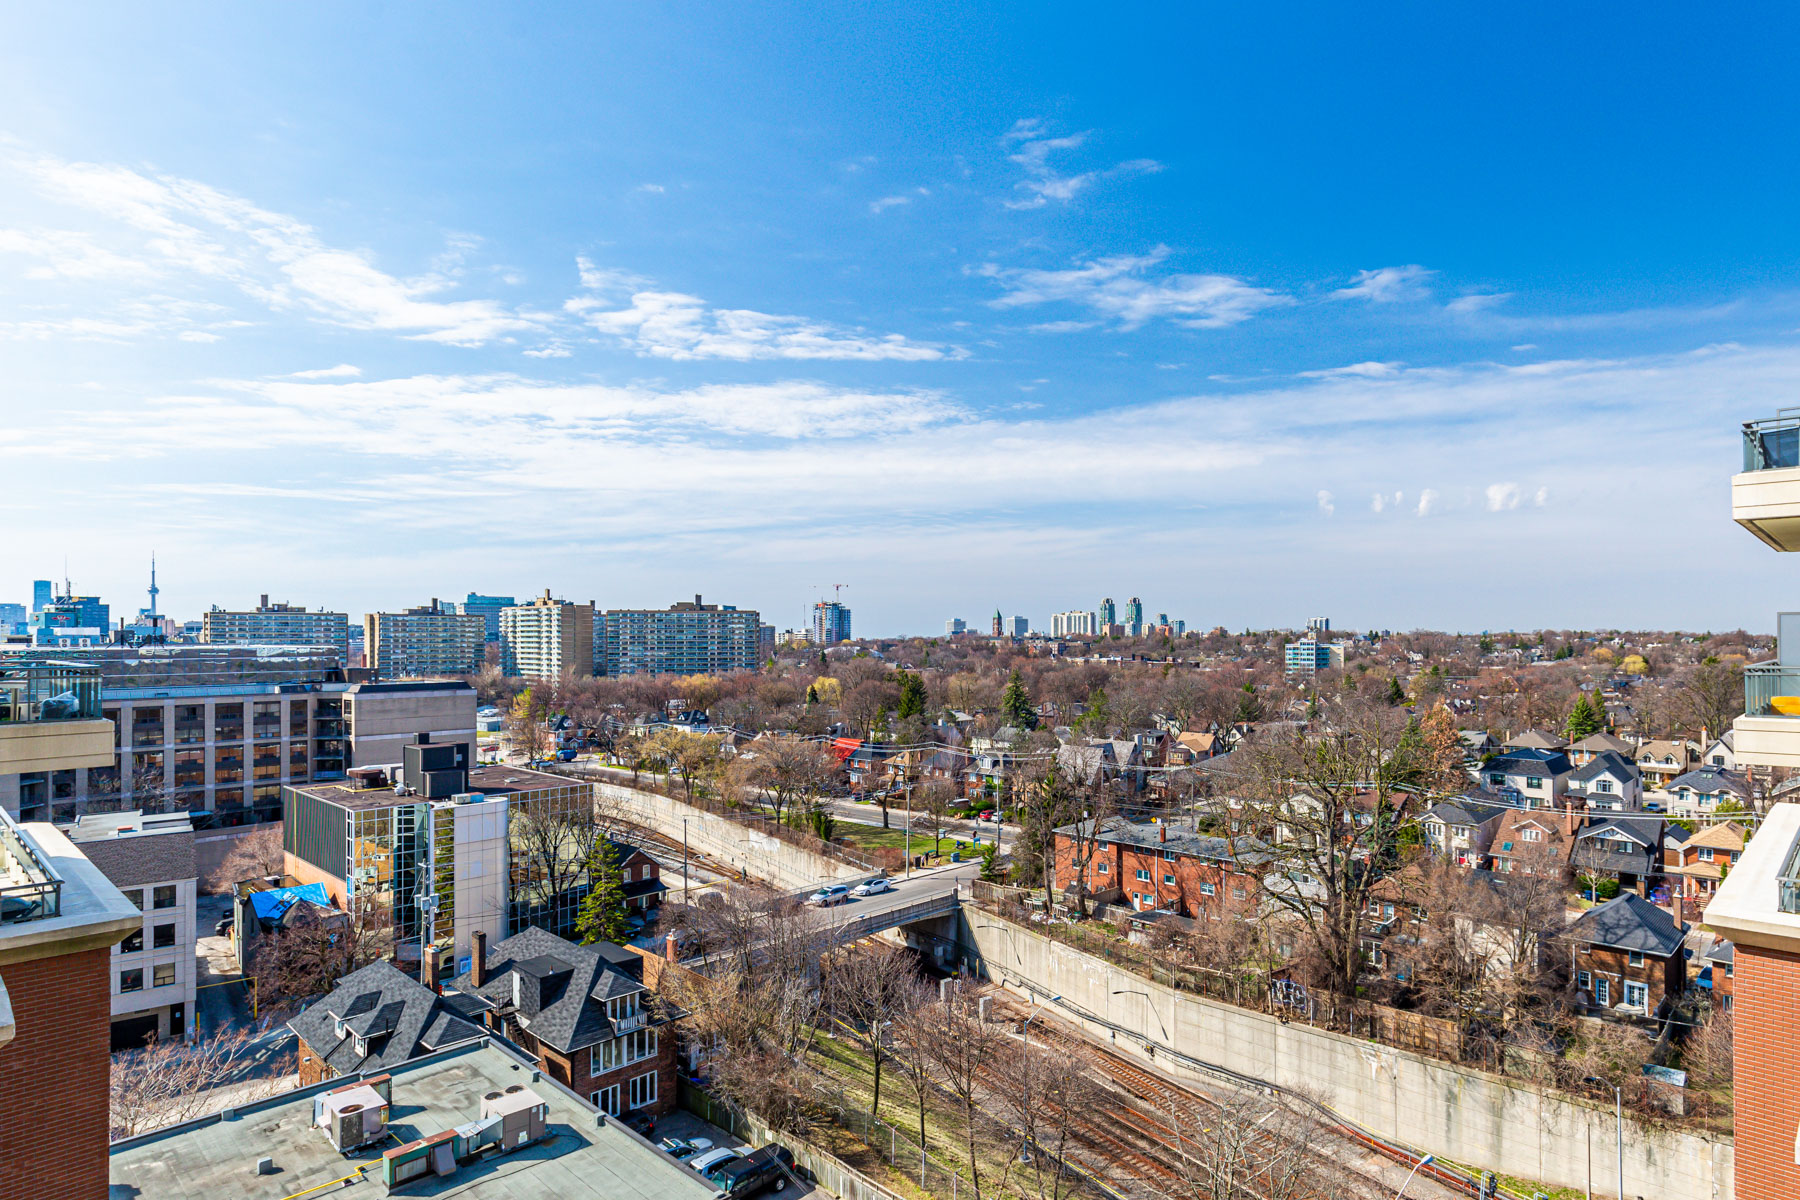 View of houses, buildings and trees of Midtown Toronto in foreground and downtown Toronto in background.